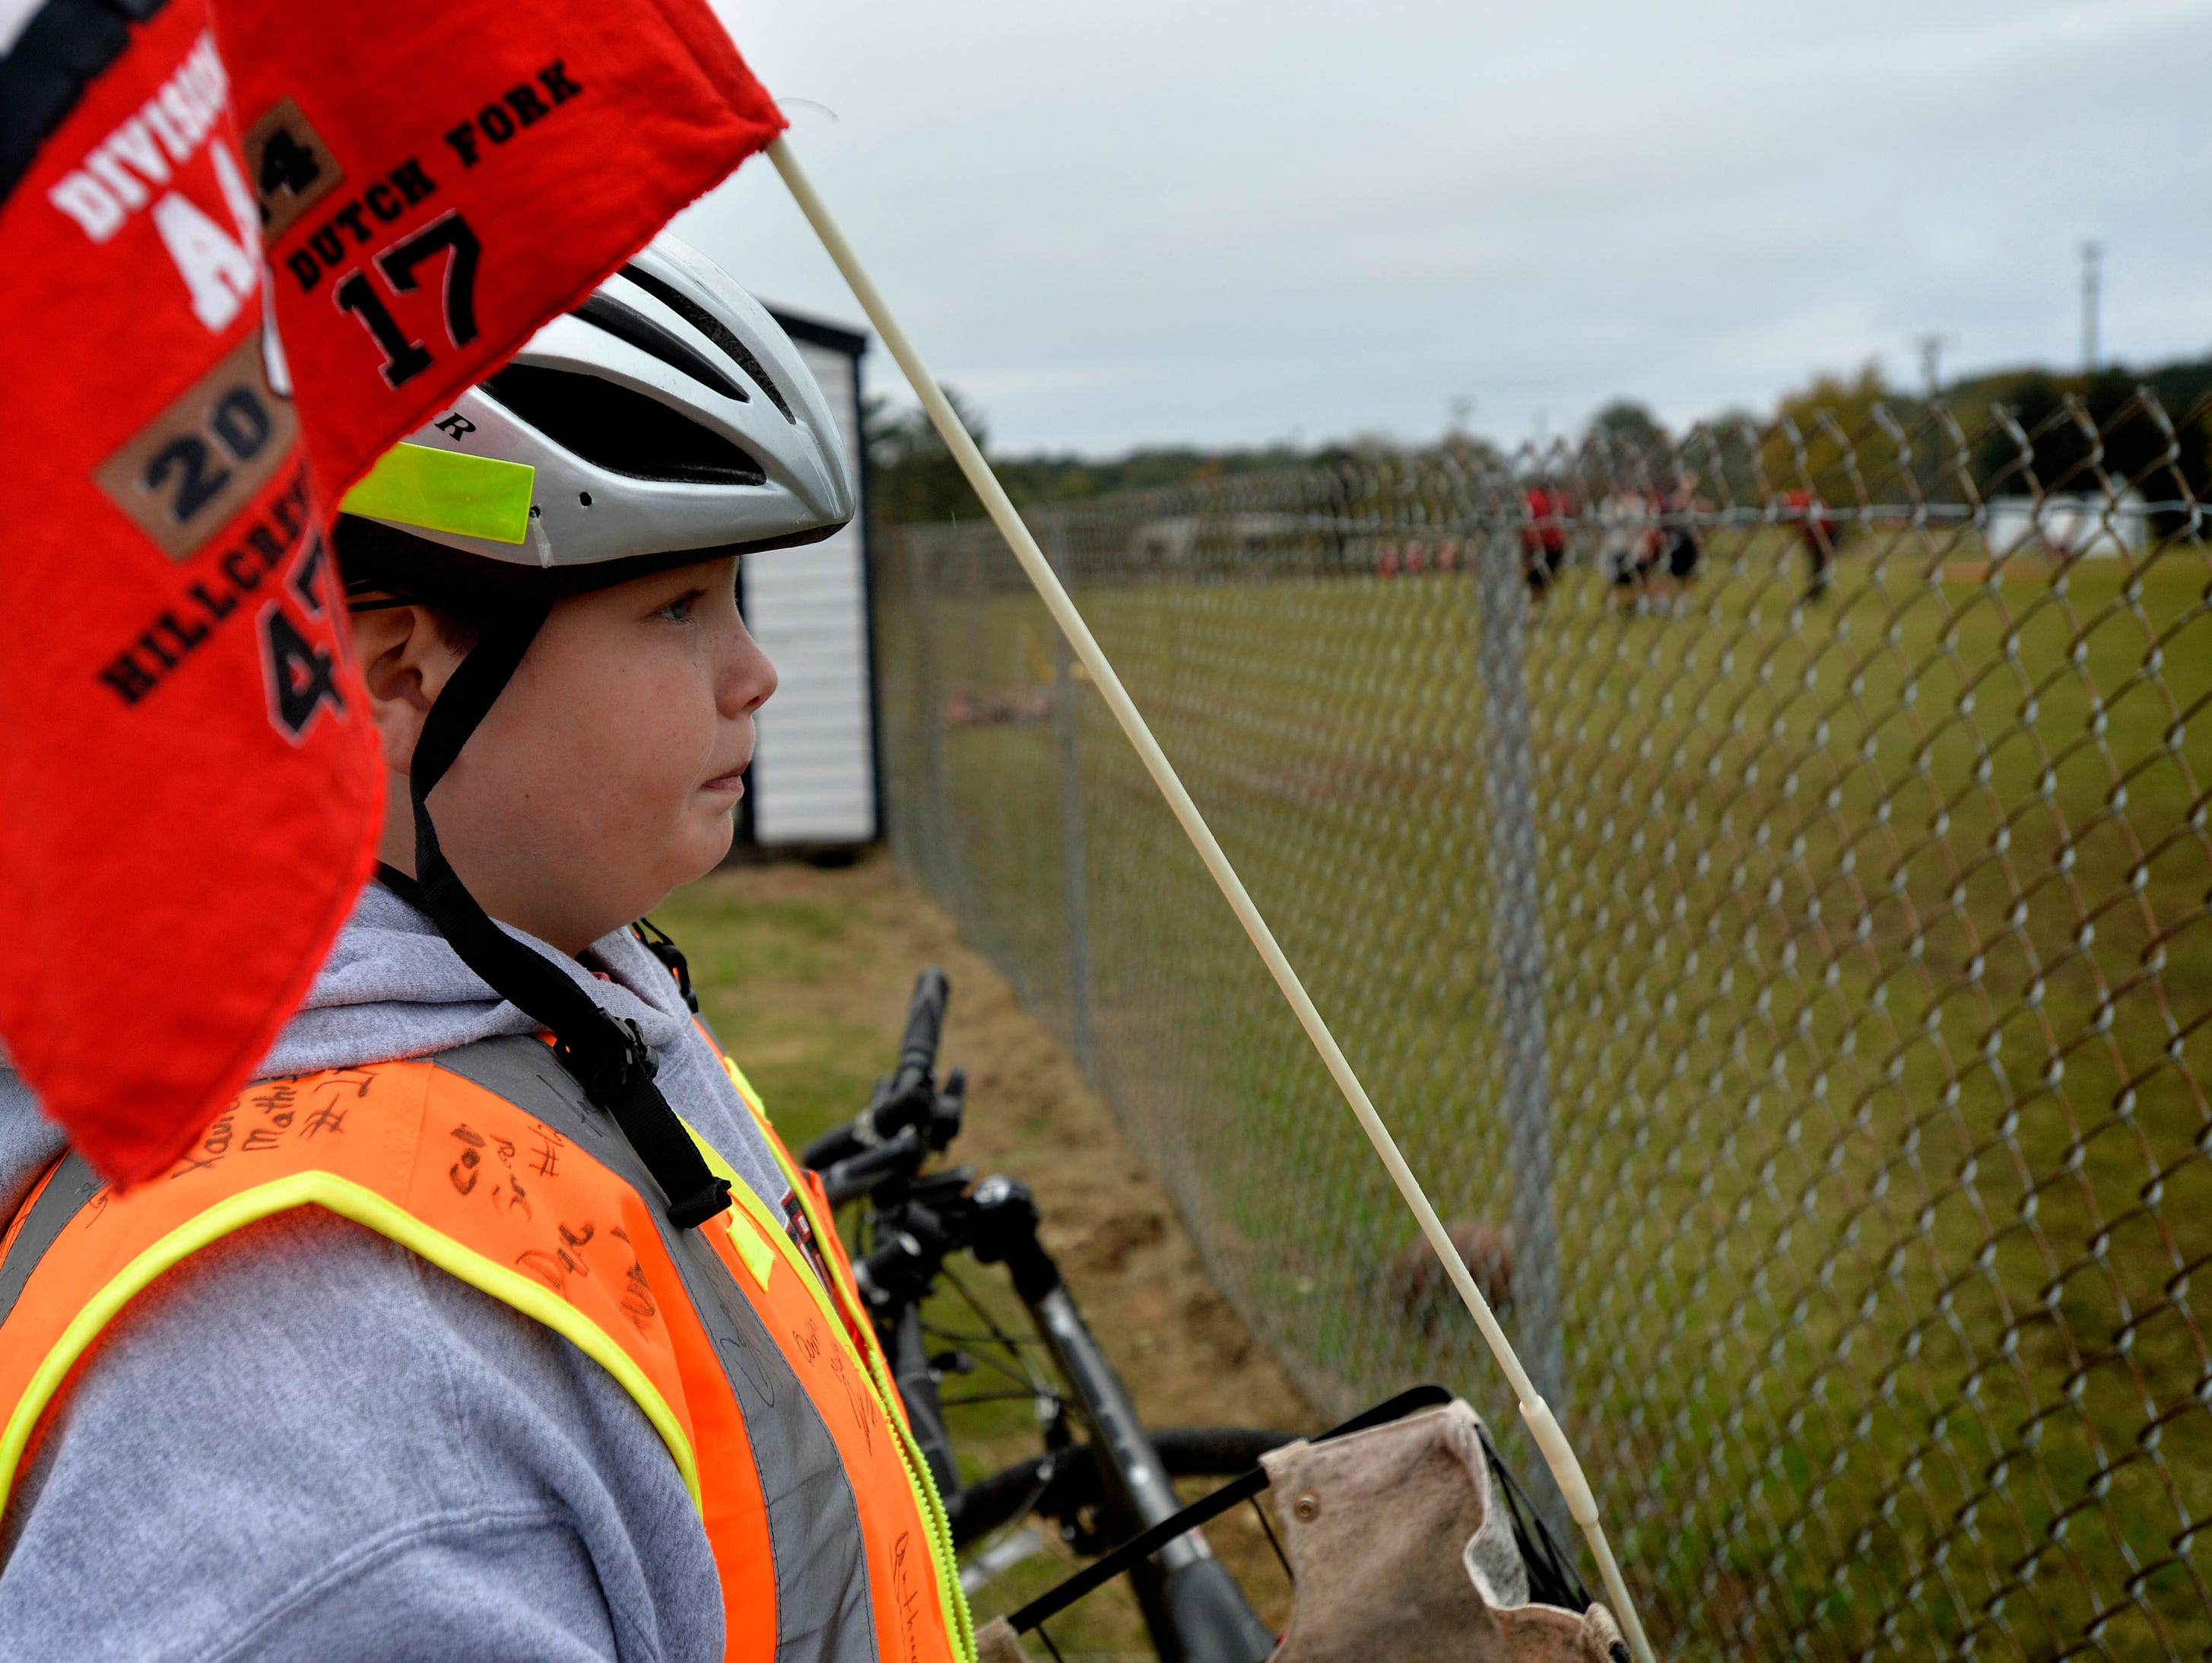 11-year-old Andrew Pepper watches the Hillcrest High School Rams practice on Nov. 5, 2015. Pepper rides his bike to every Rams football game.